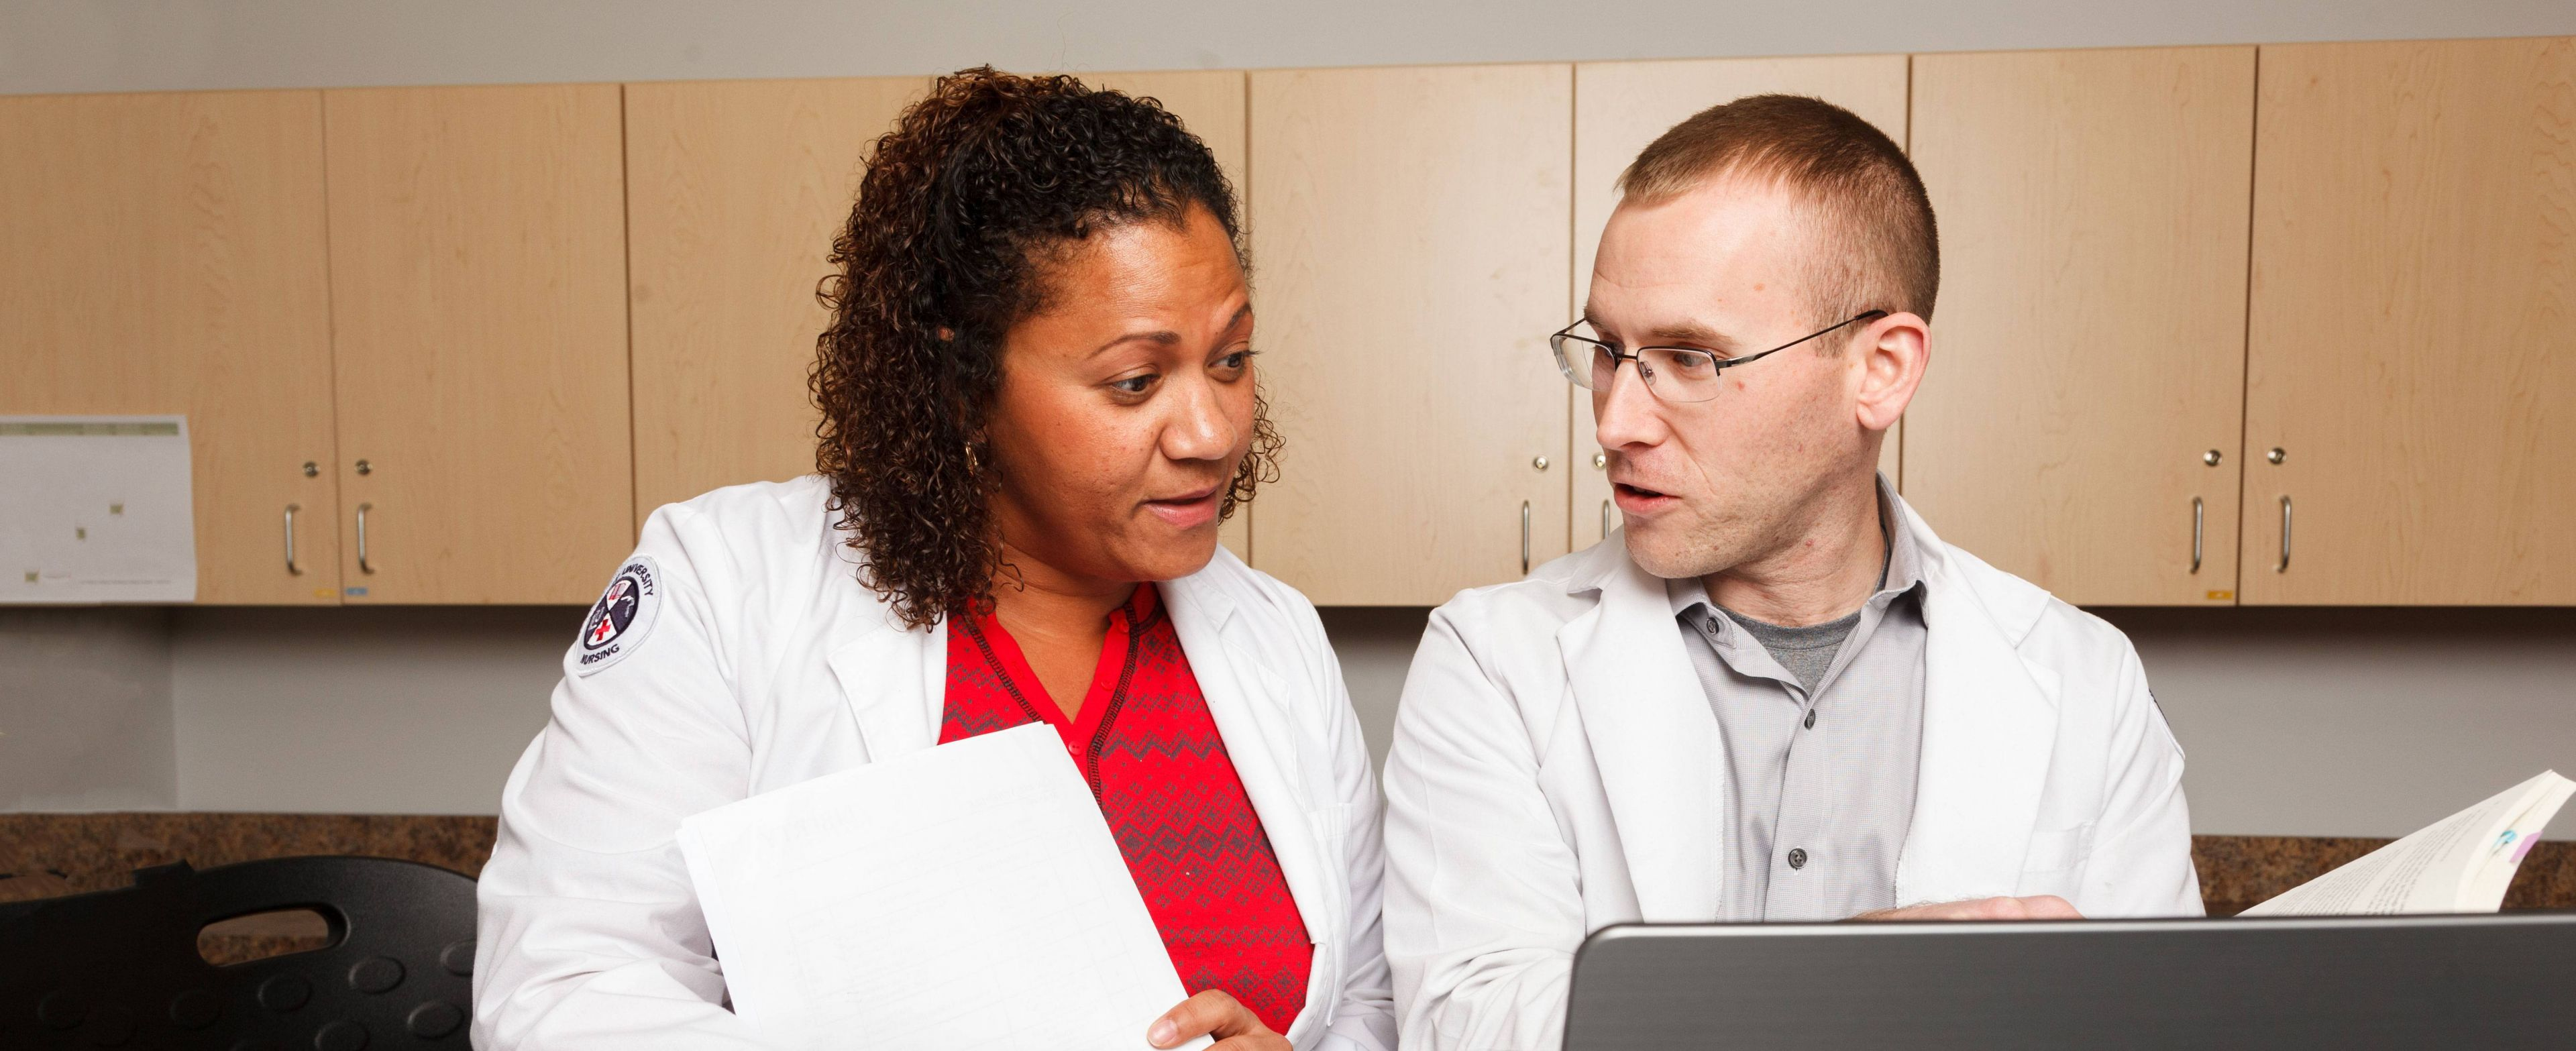 Master's Degree in Healthcare Administration - Project Management Degree